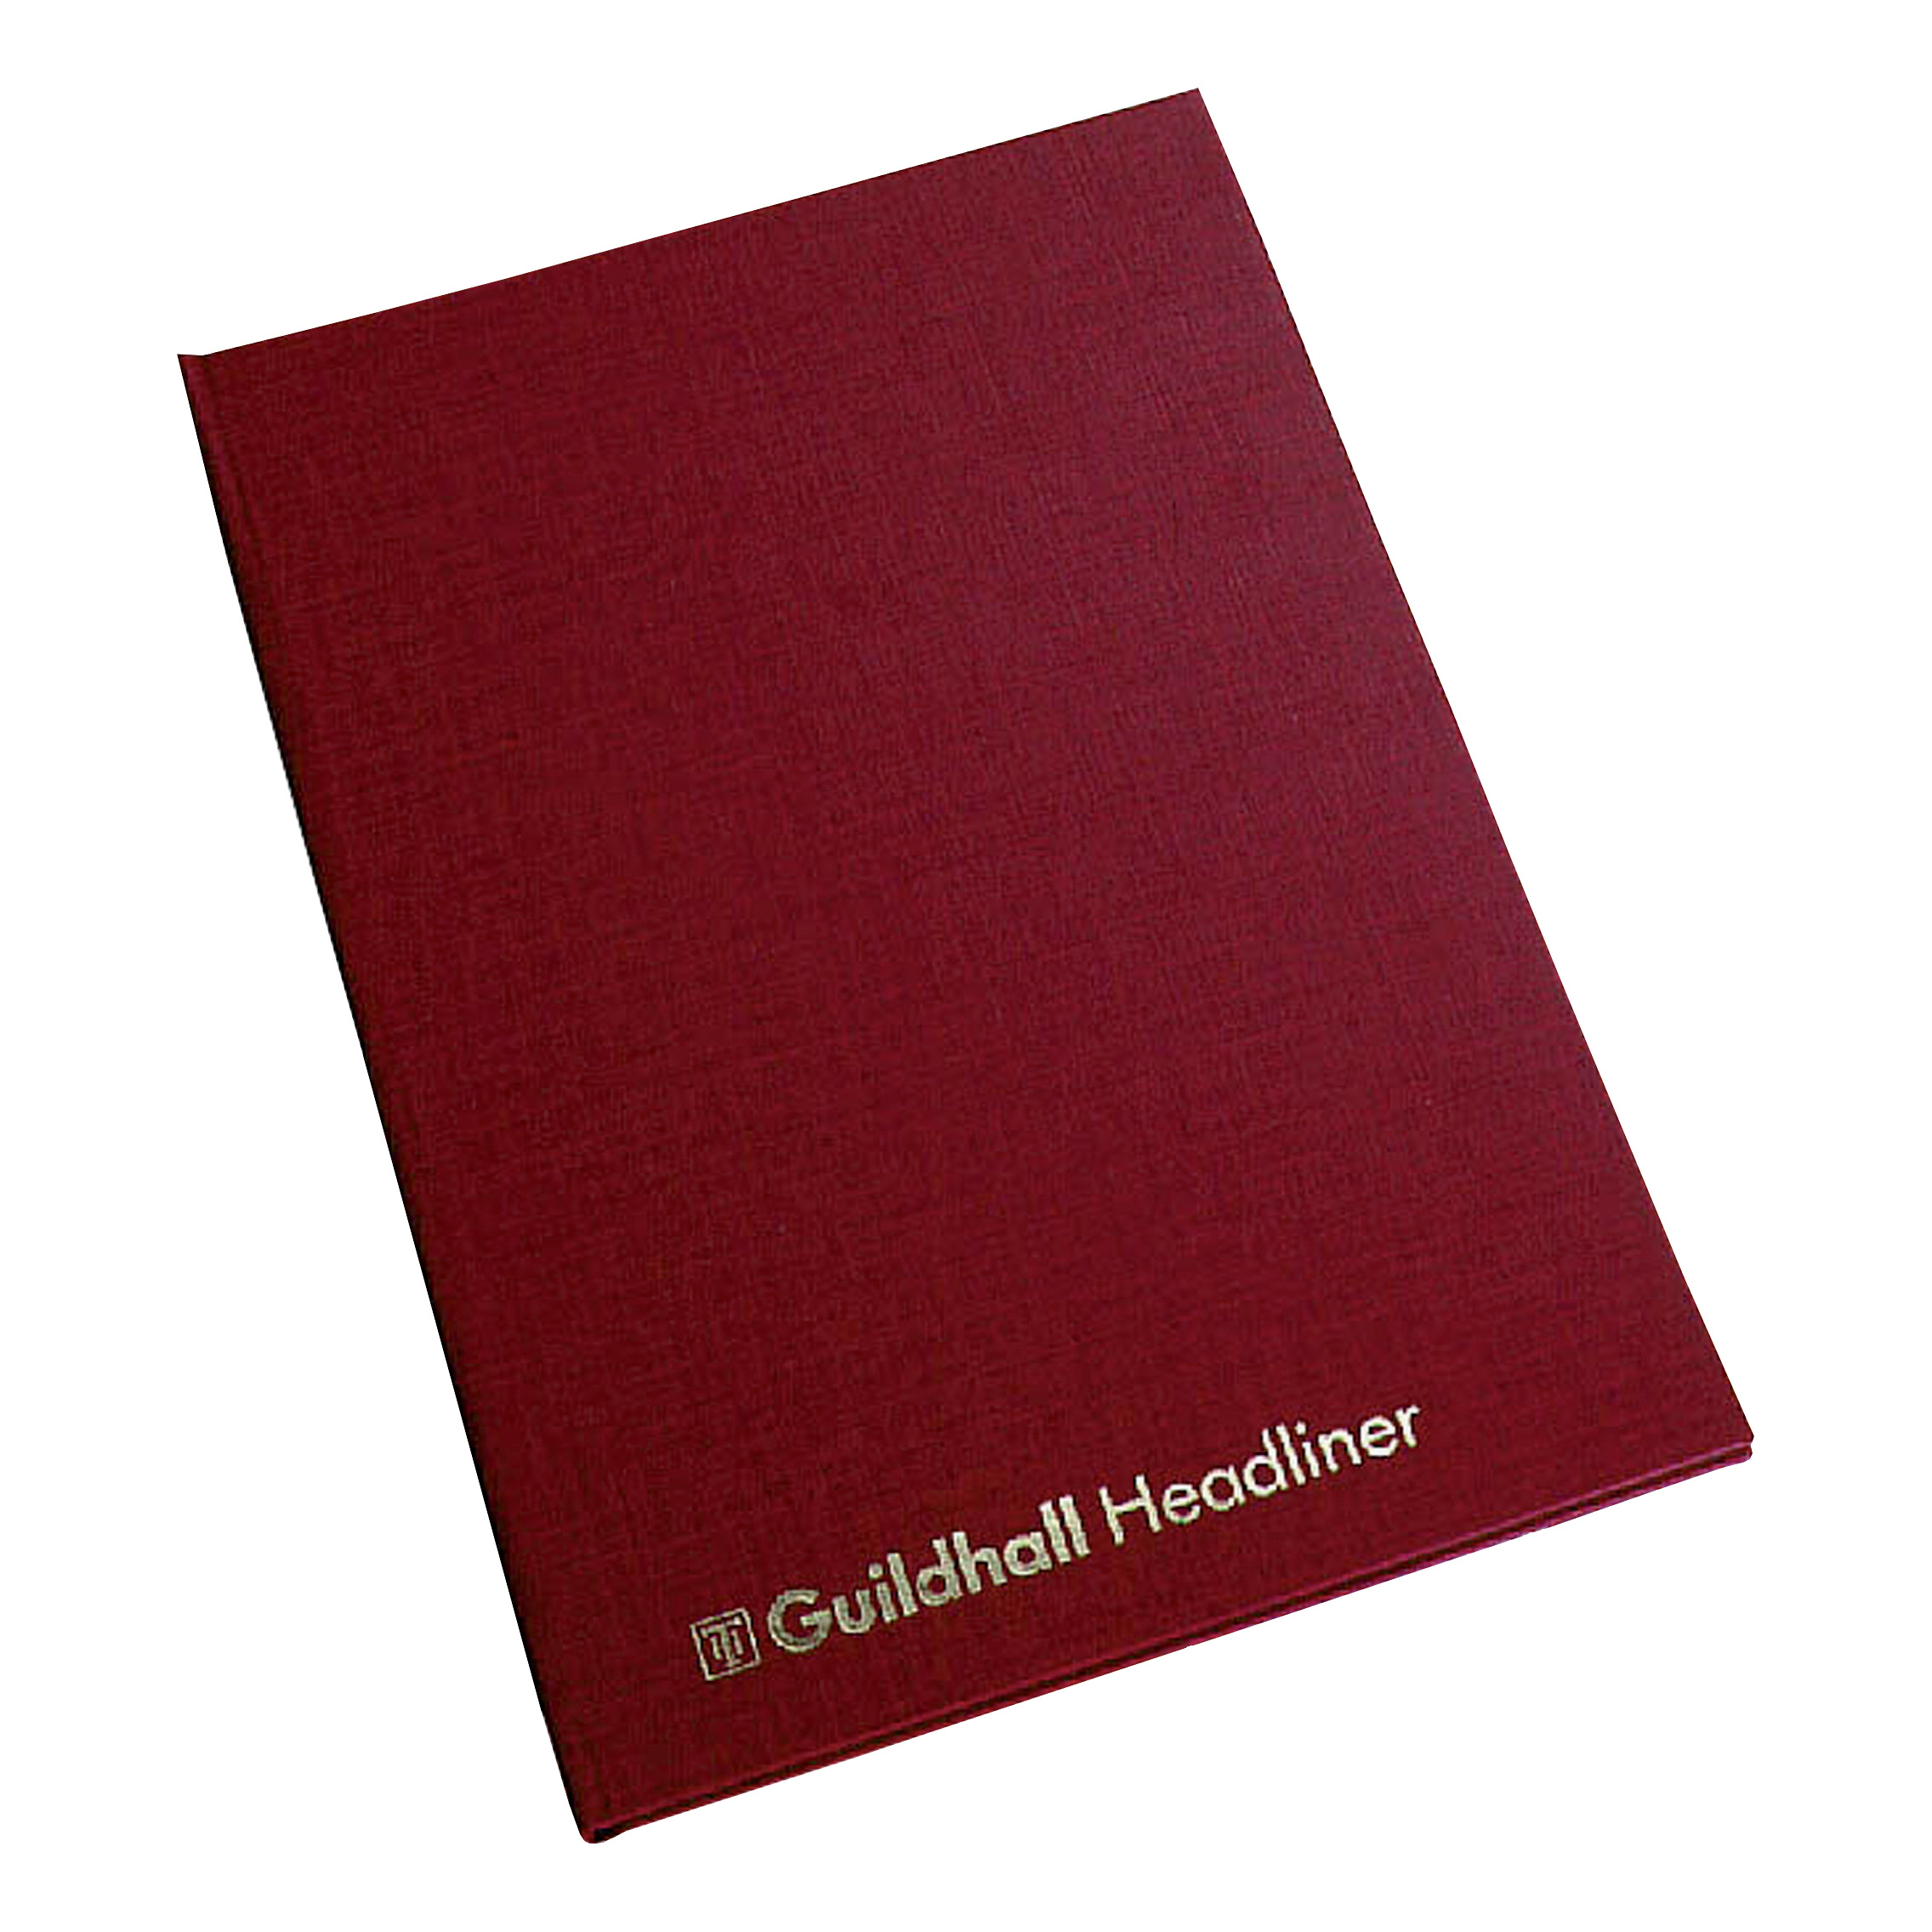 Accounts Binders & Refills Guildhall Headliner Account Book 58 Series 4/16 Petty Cash Column 80 Pages 298x305mm Ref 58/4-16Z